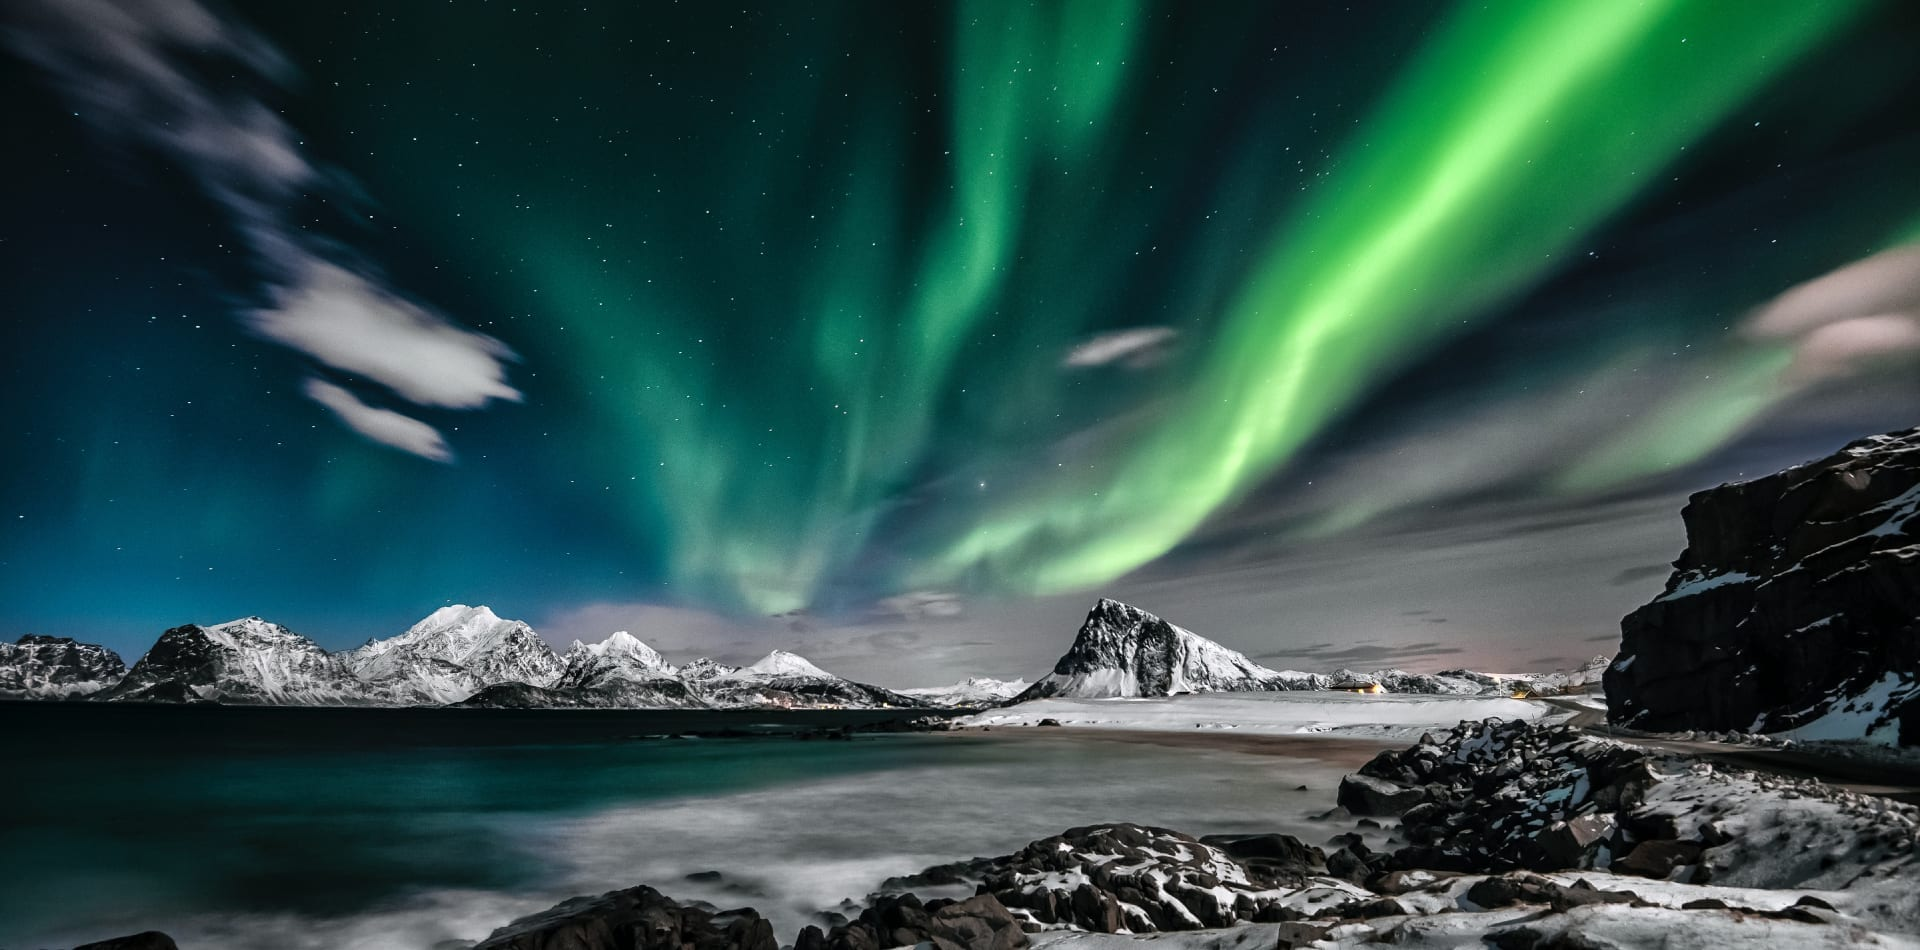 The Northern lights in the Arctic